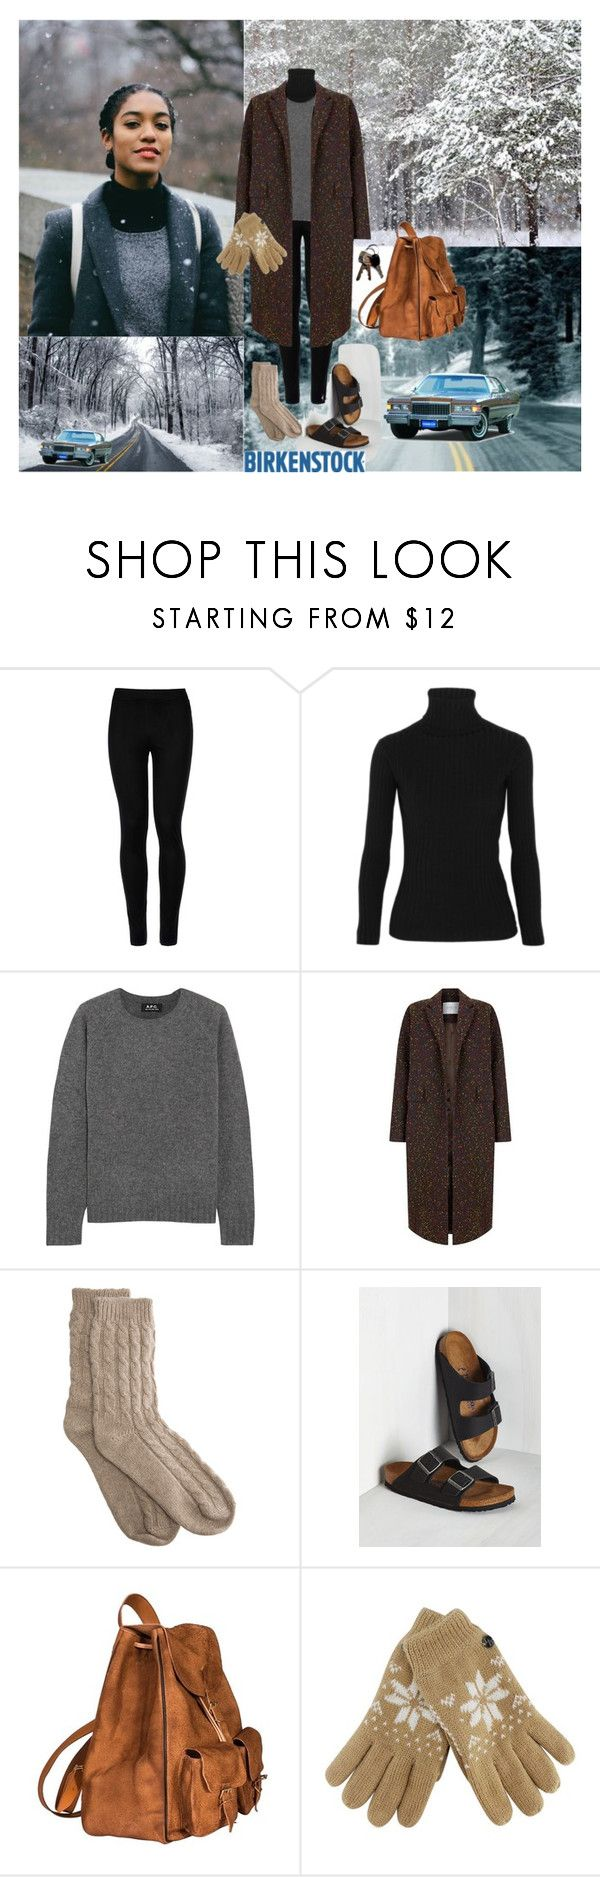 """Jeanette Bradley: Treacherous Winter Driving❤️👩🏽❄️🌨💨👜👣🛣❤️"" by chrisiggy ❤ liked on Polyvore featuring Wolford, Acne Studios, A.P.C., The 2nd Skin Co., Bamford, Birkenstock and Yves Saint Laurent"